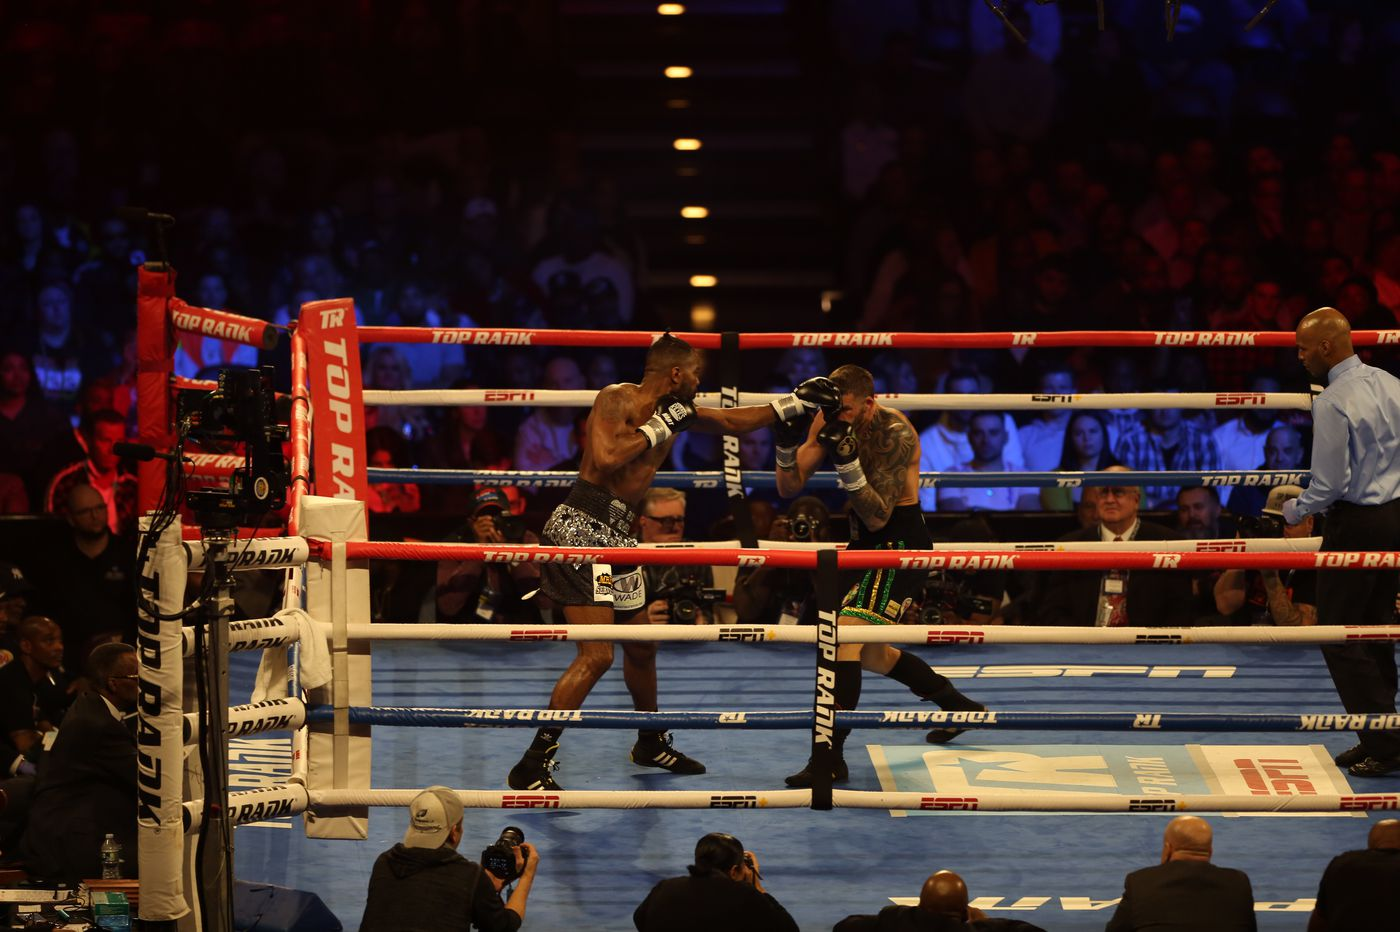 Philly fighter Jesse Hart falls to Joe Smith Jr. in split decision